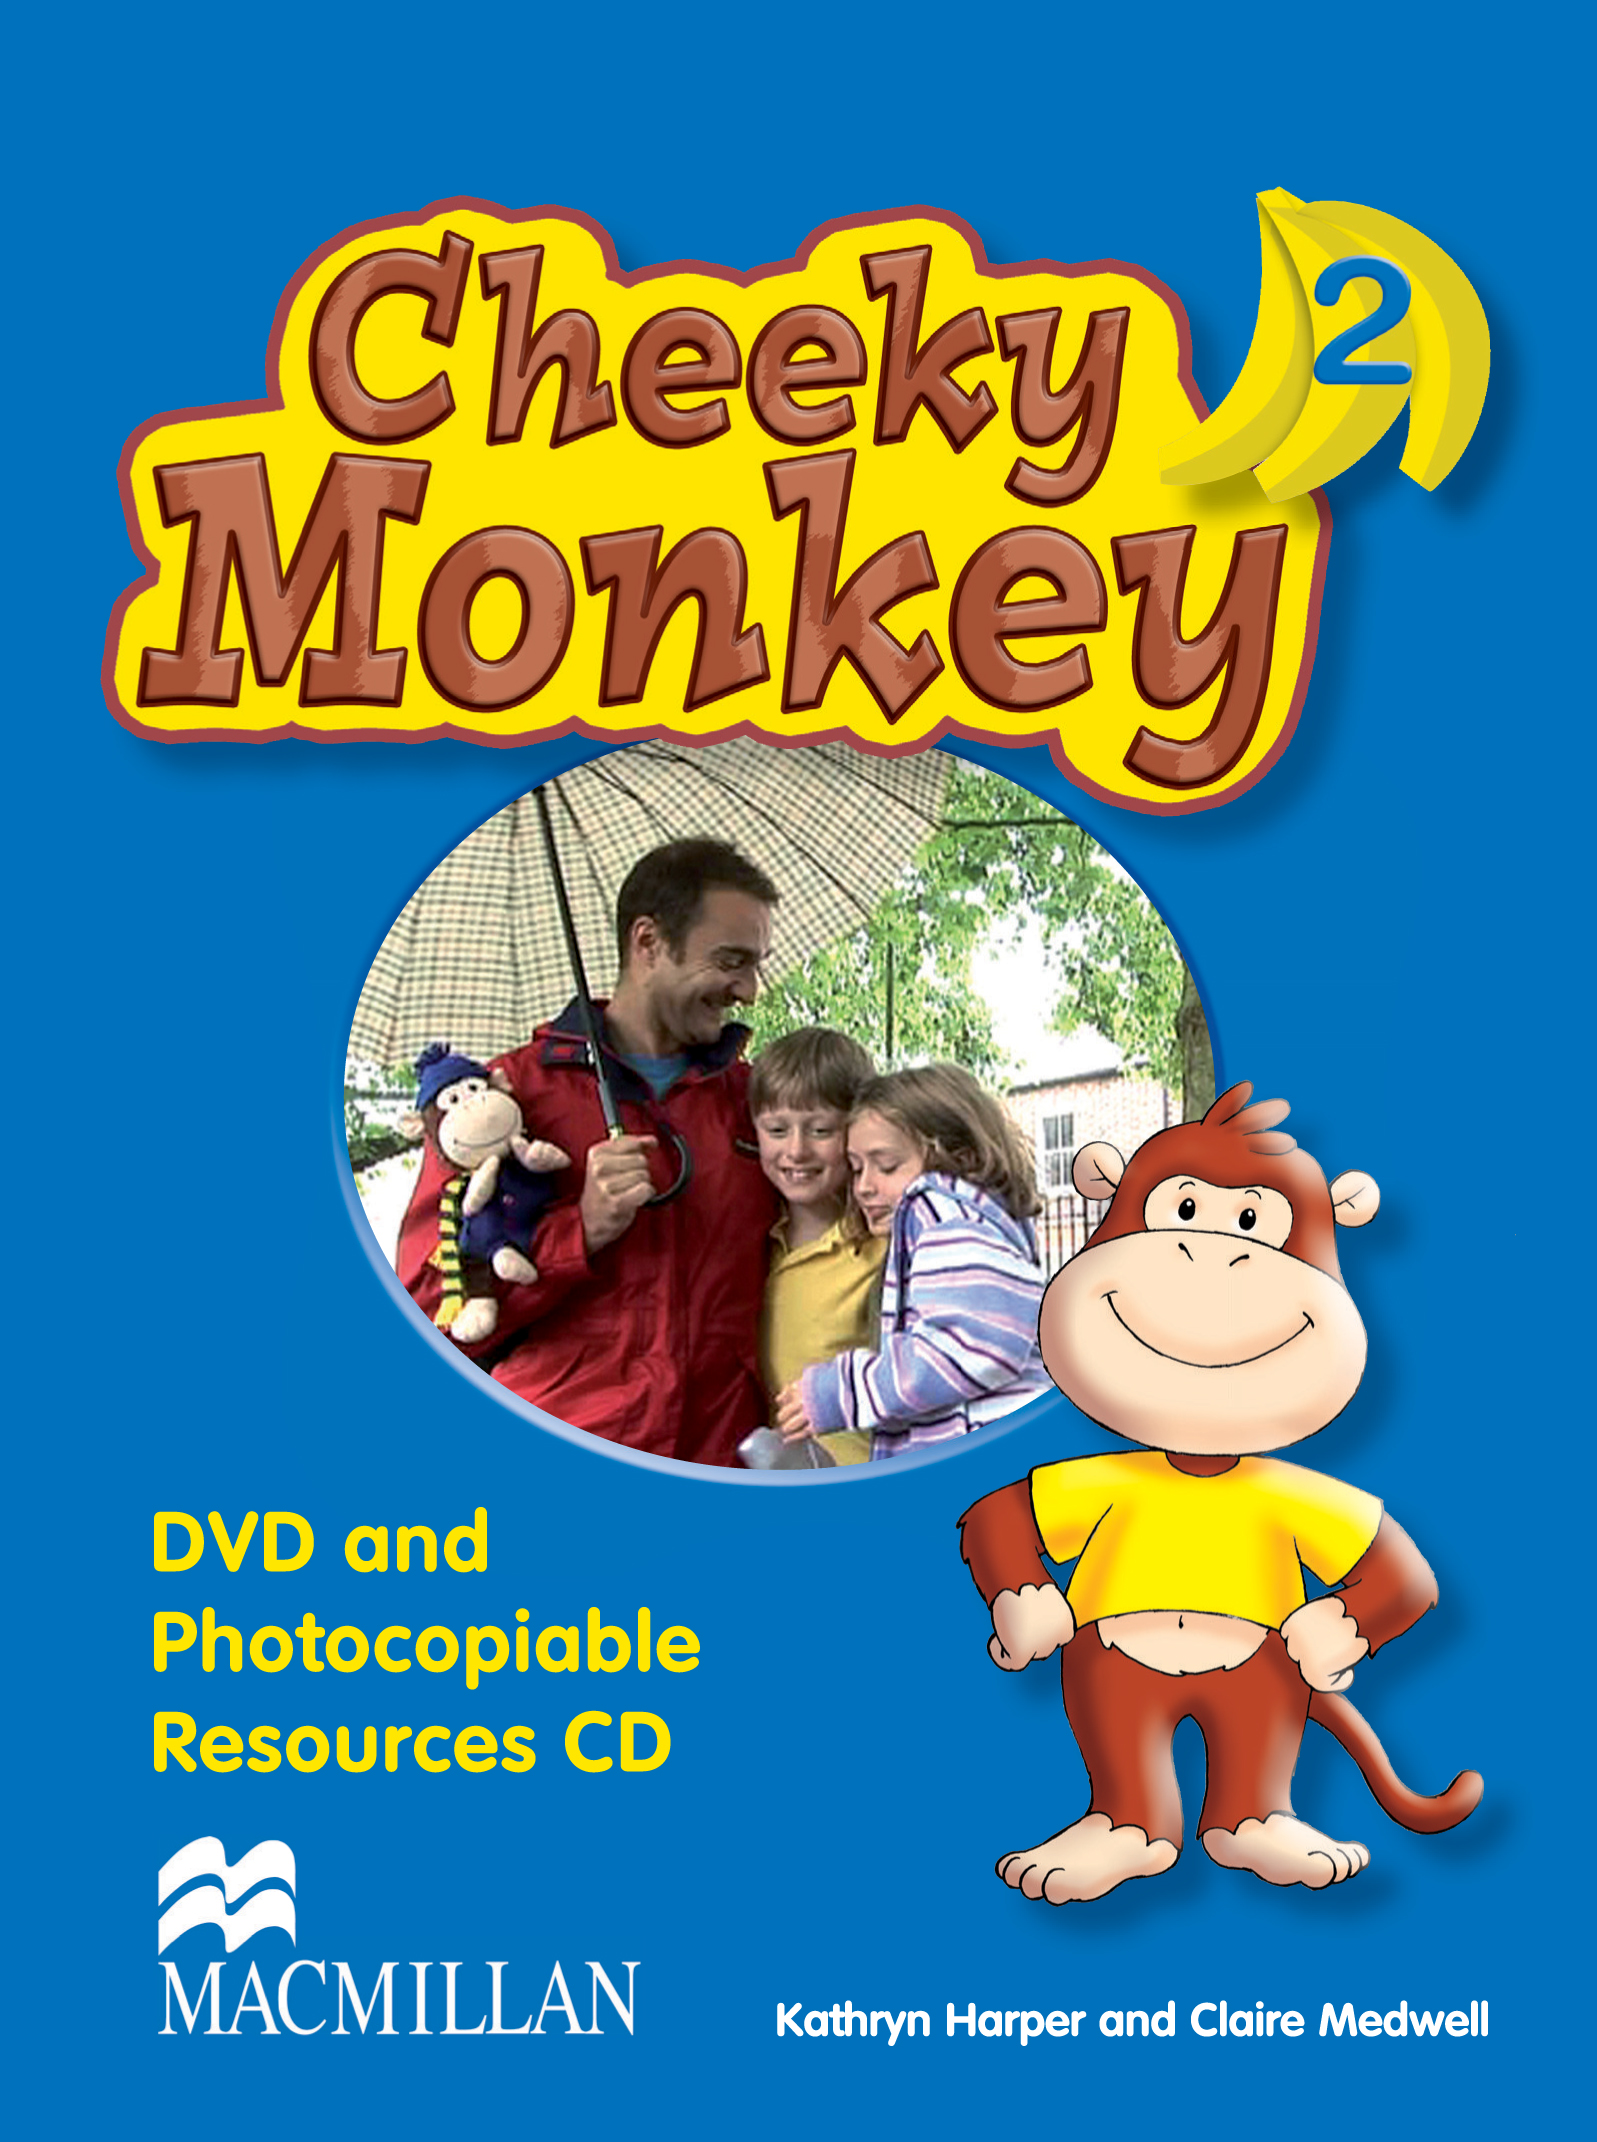 Cheeky Monkey 2 DVD and Photocopiable CD